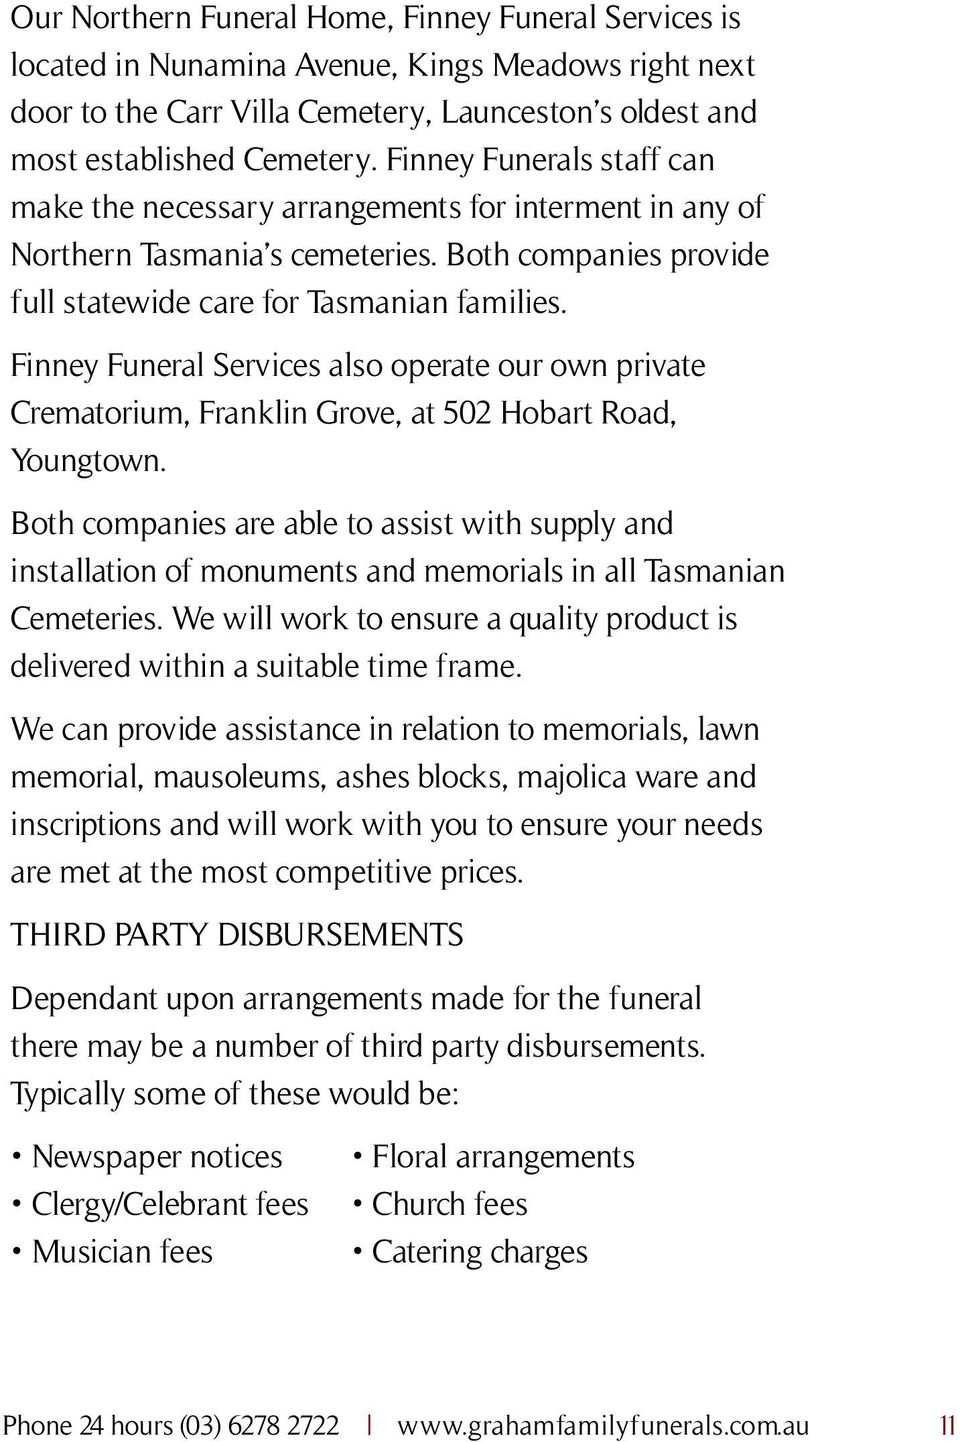 Finney Funeral Services also operate our own private Crematorium, Franklin Grove, at 502 Hobart Road, Youngtown.